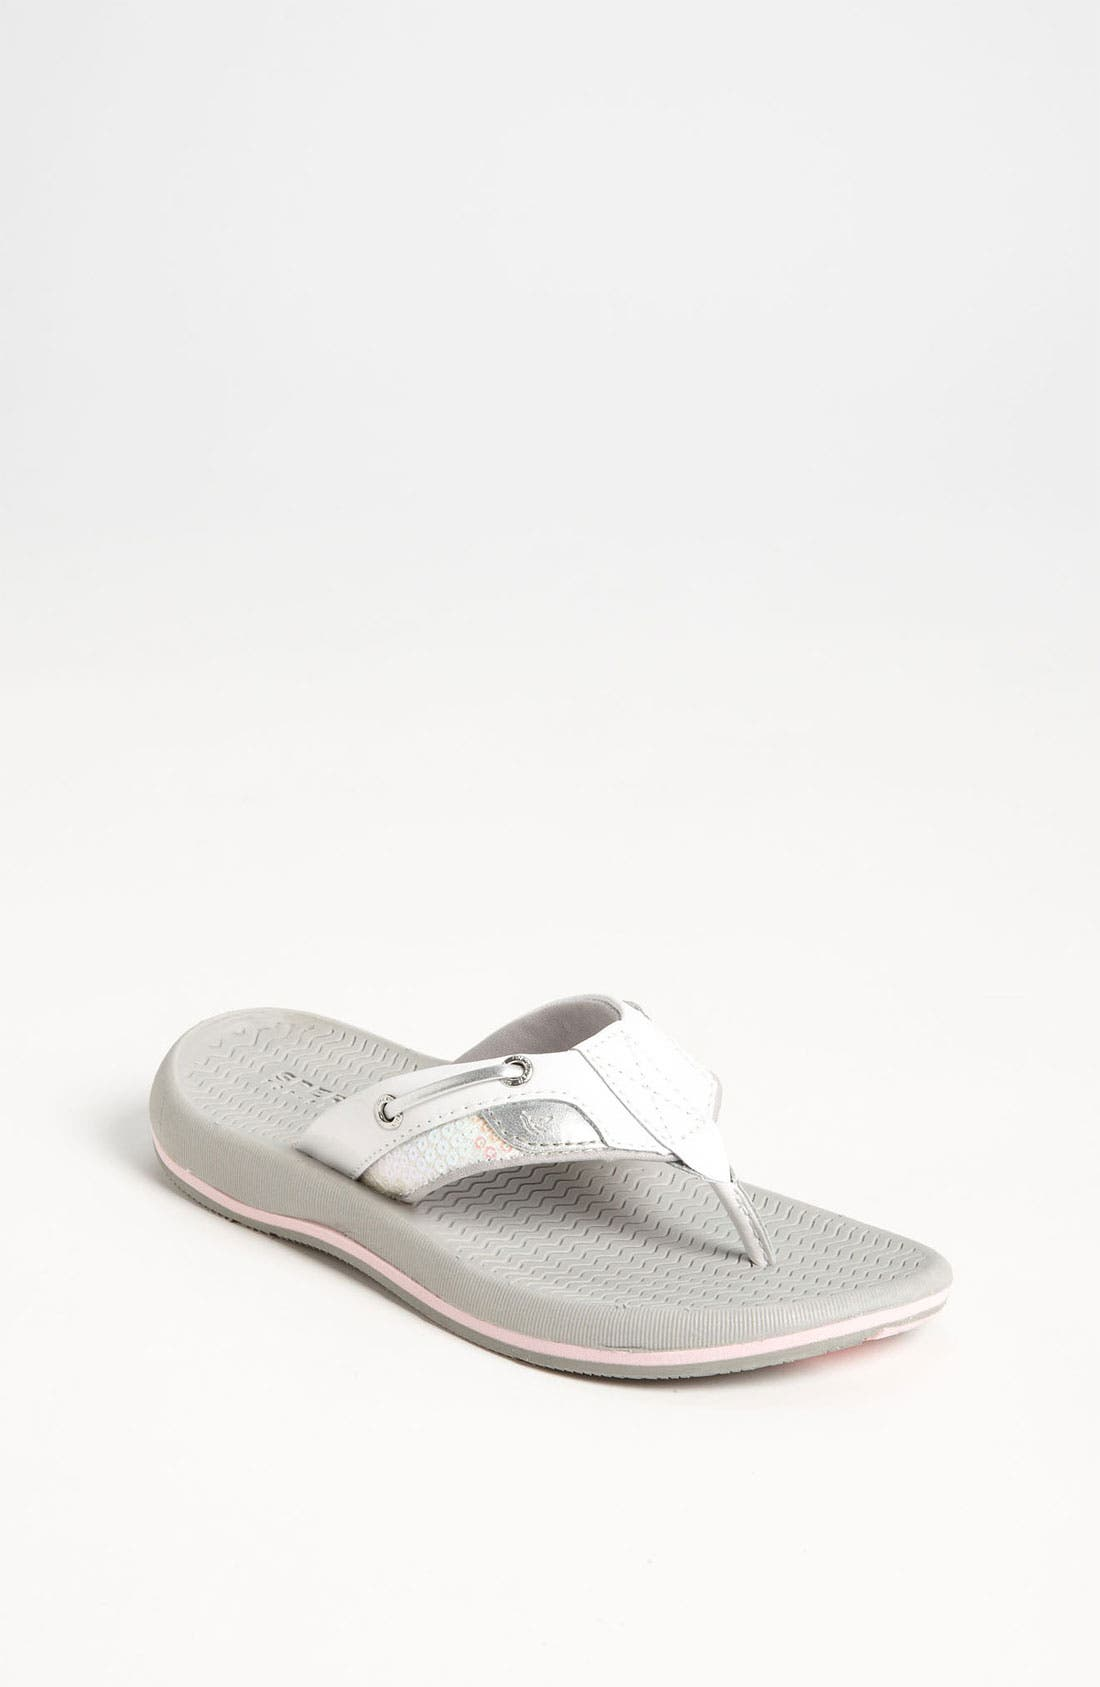 Alternate Image 1 Selected - Sperry Top-Sider® 'Bluefish' Thong Sandal (Toddler, Little Kid & Big Kid)